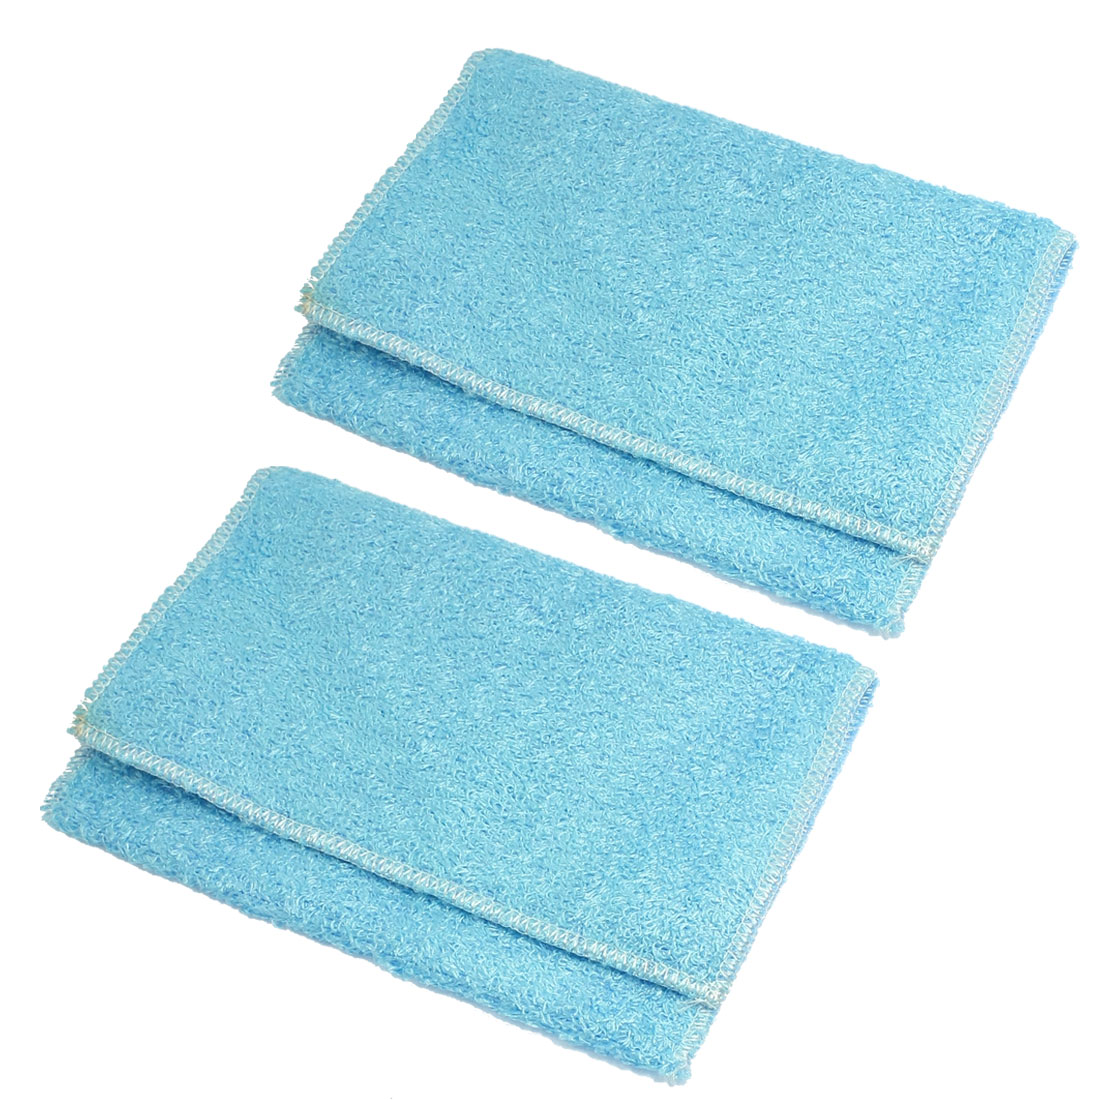 "2 Pcs Blue 8.7"" x 7"" Artificial Fibre Textured Square Design Home Washcloth Towel"